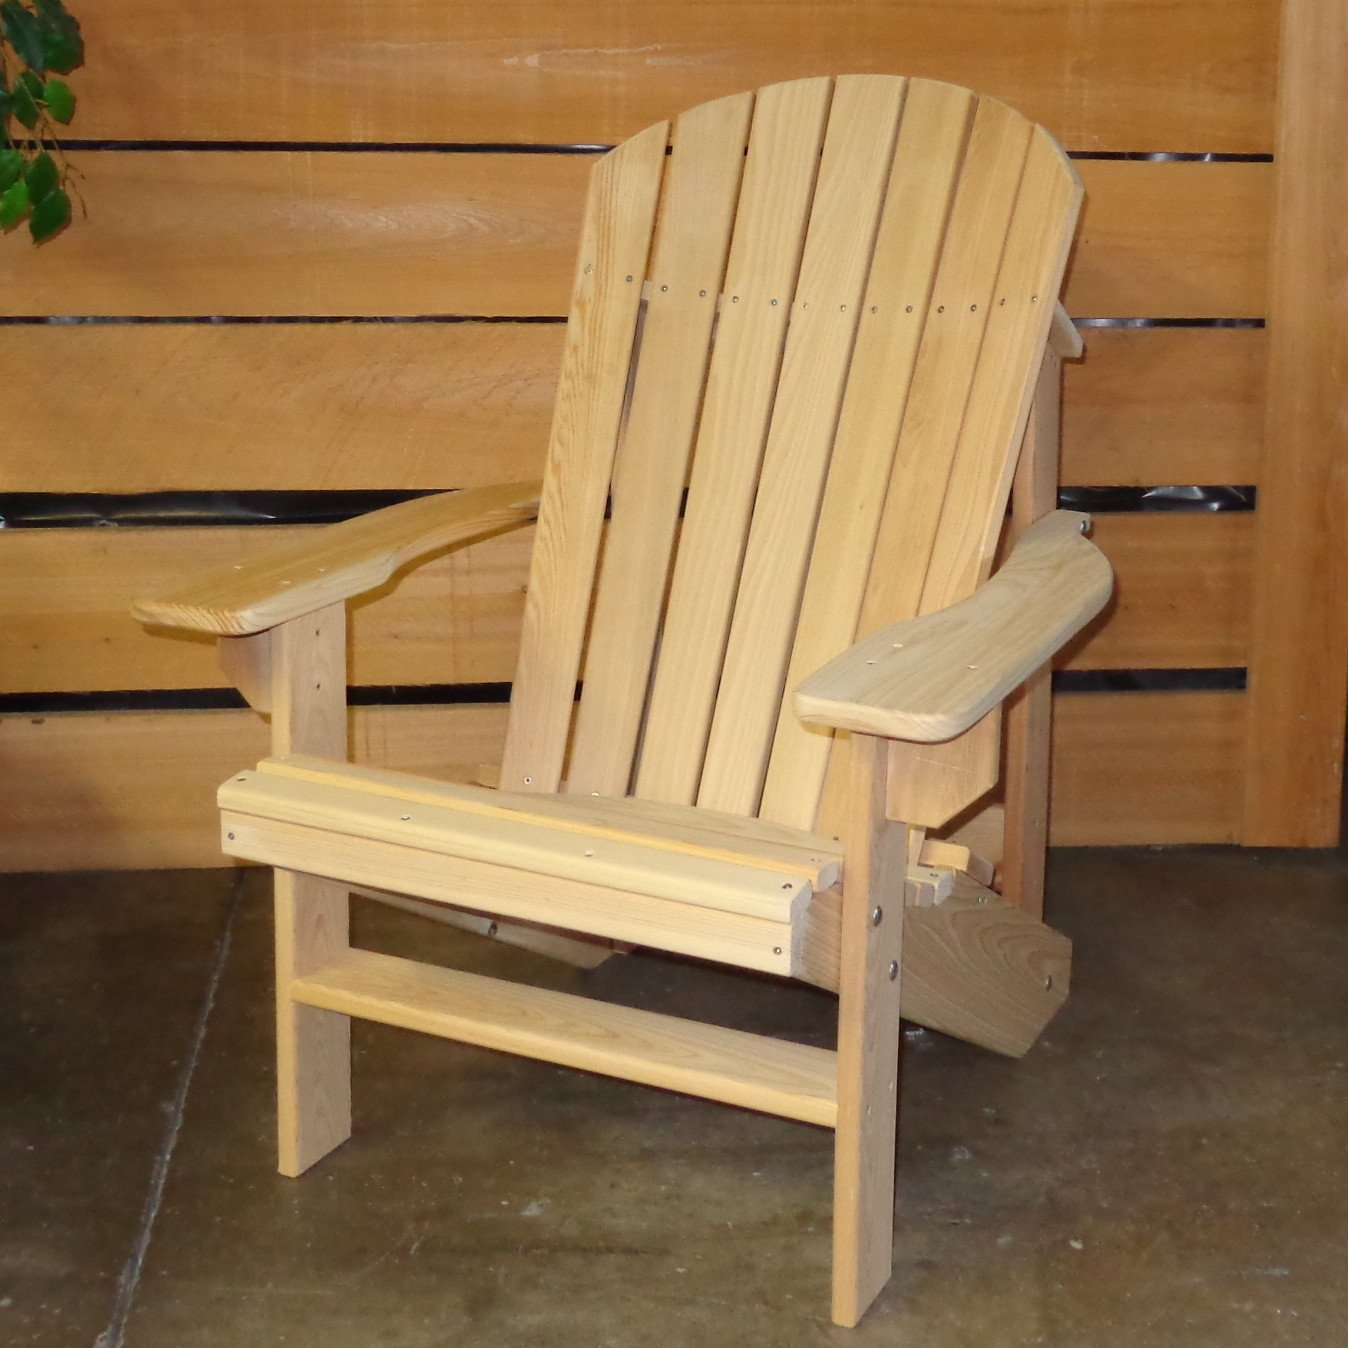 Charmant Amazon.com : Cypress ADIRONDACK Chair And OTTOMAN With Contoured Seat And  Back Assembled With Stainless Steel Hardware Handmade In The USA With ...